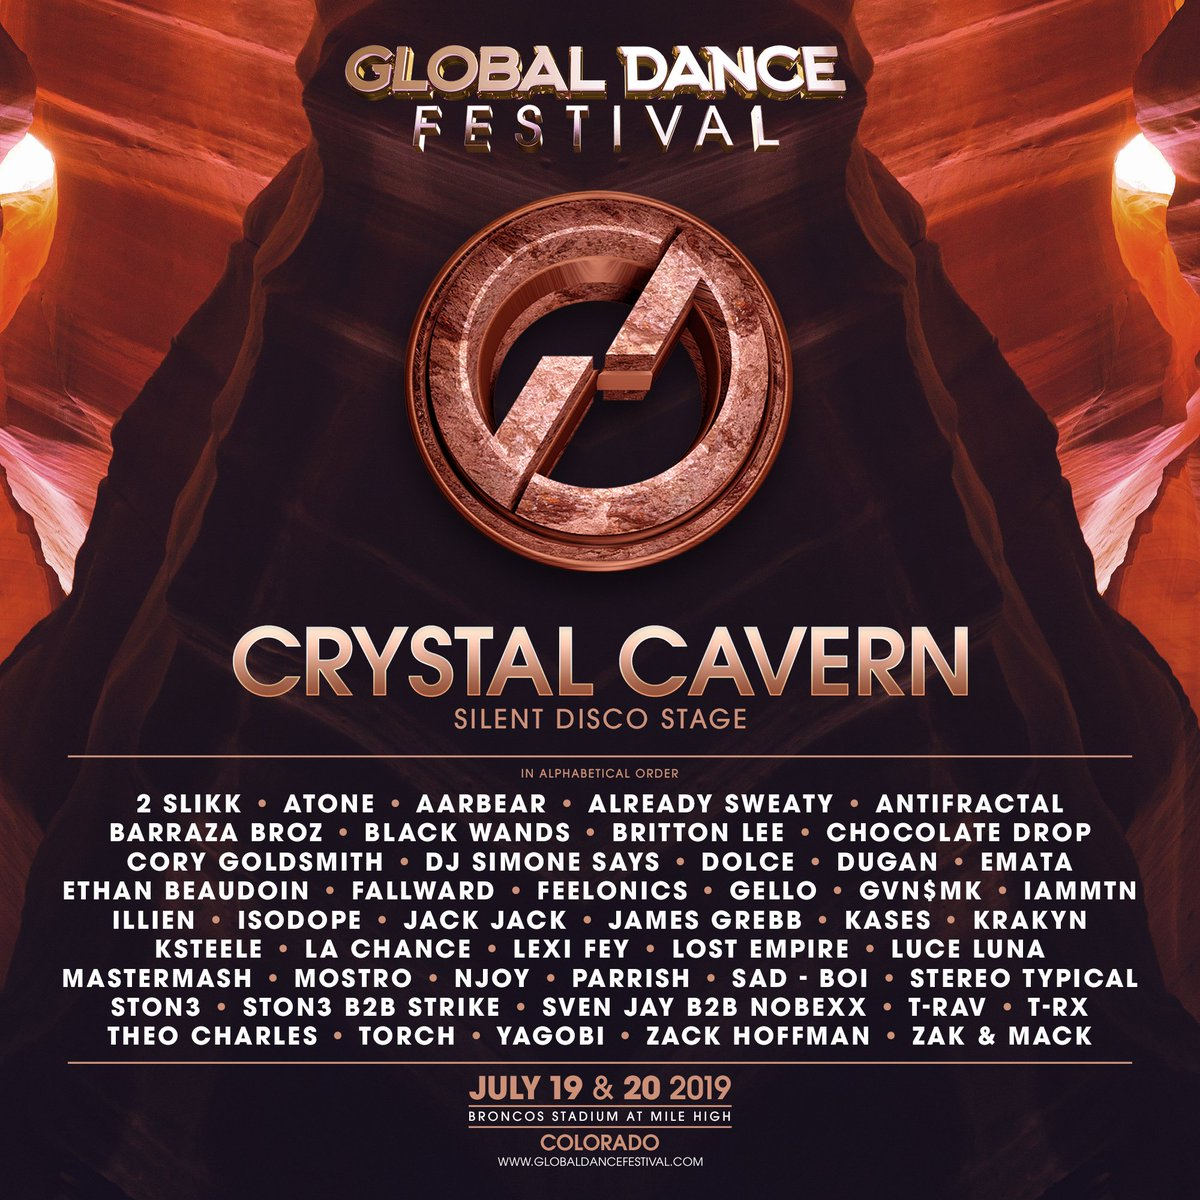 The Global Dance Festival Crystal Cavern lineup for 2019